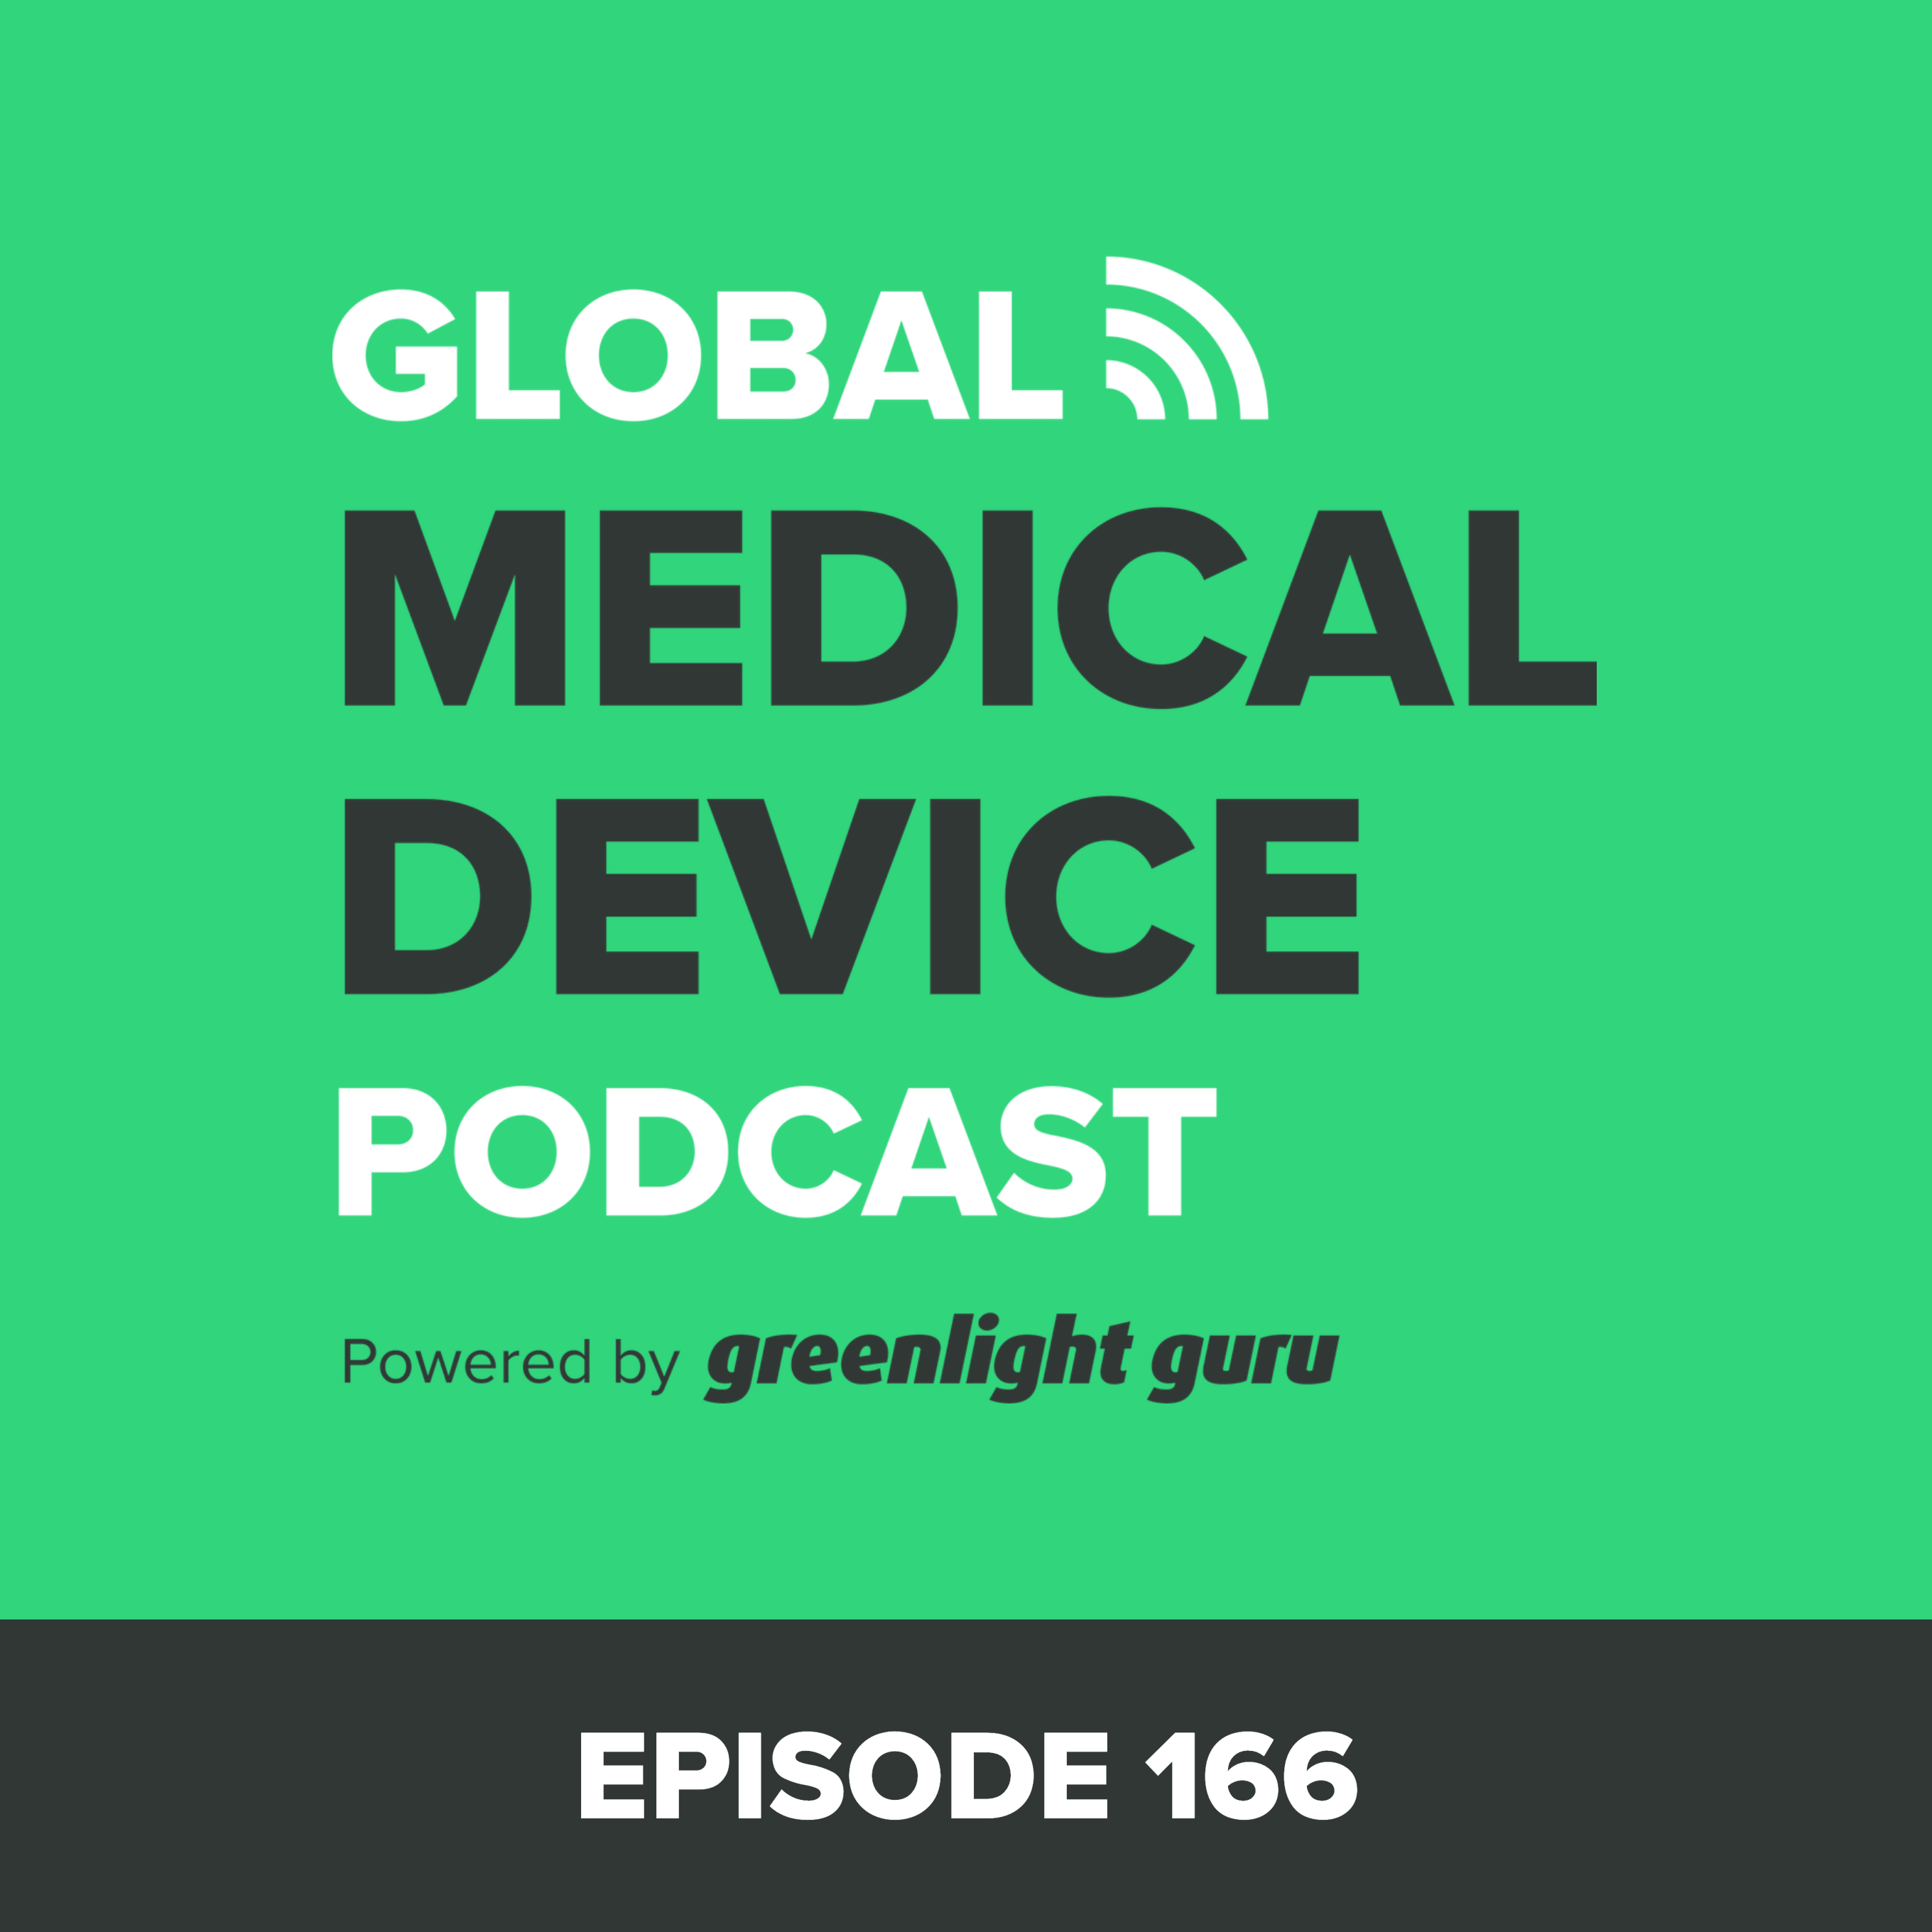 Why Biocompatibility Should be Addressed by Every Medical Device Company